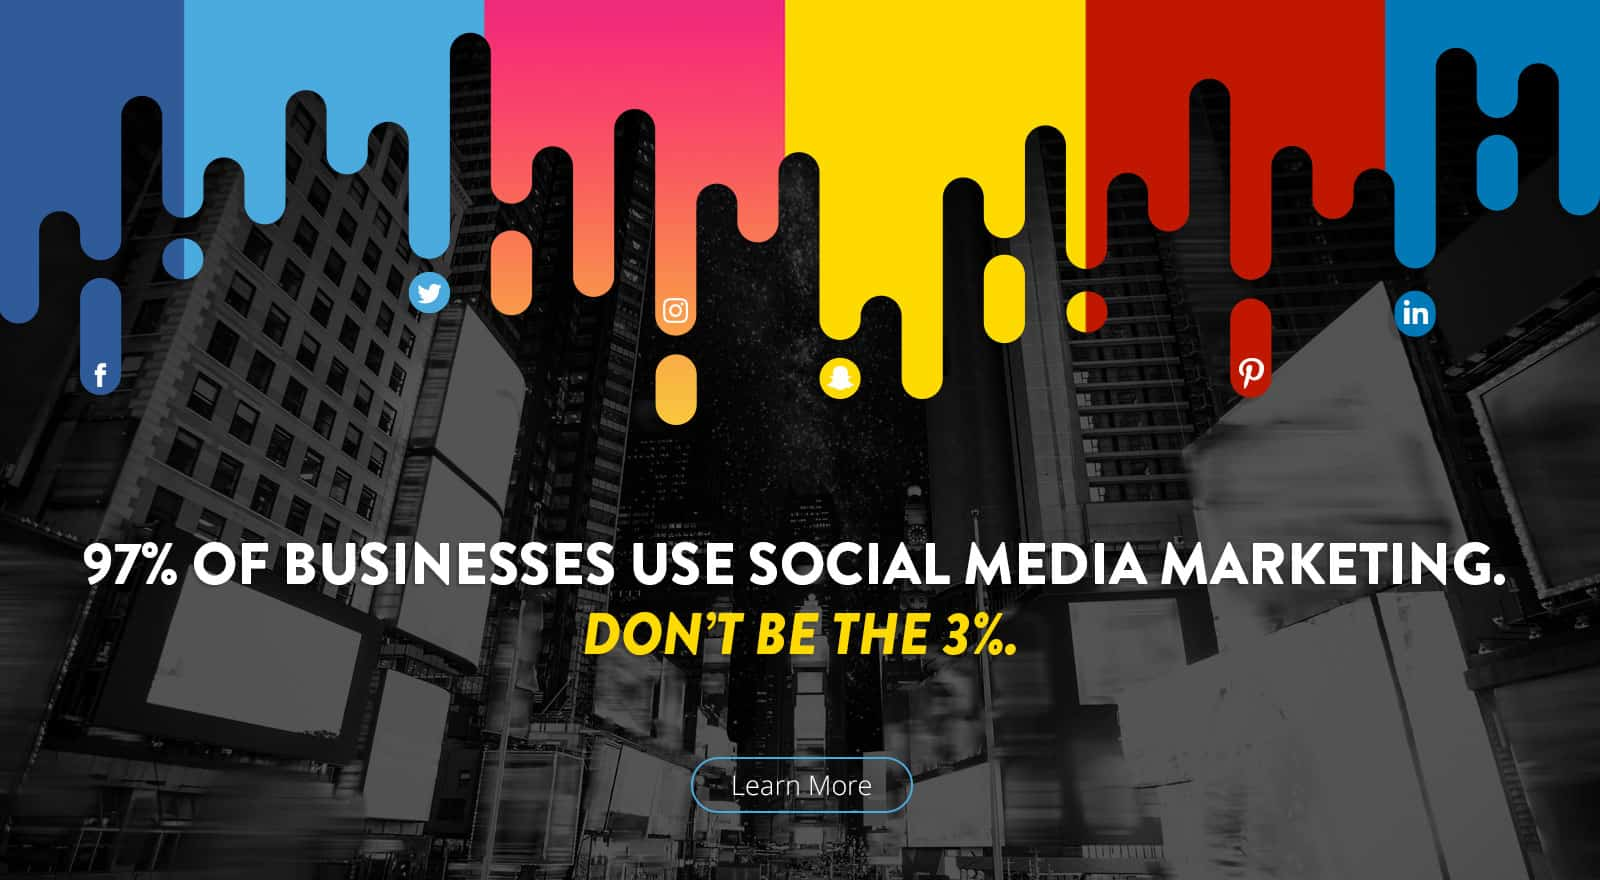 Page link with text: 7% of business use social media marketing don't be the 3%.